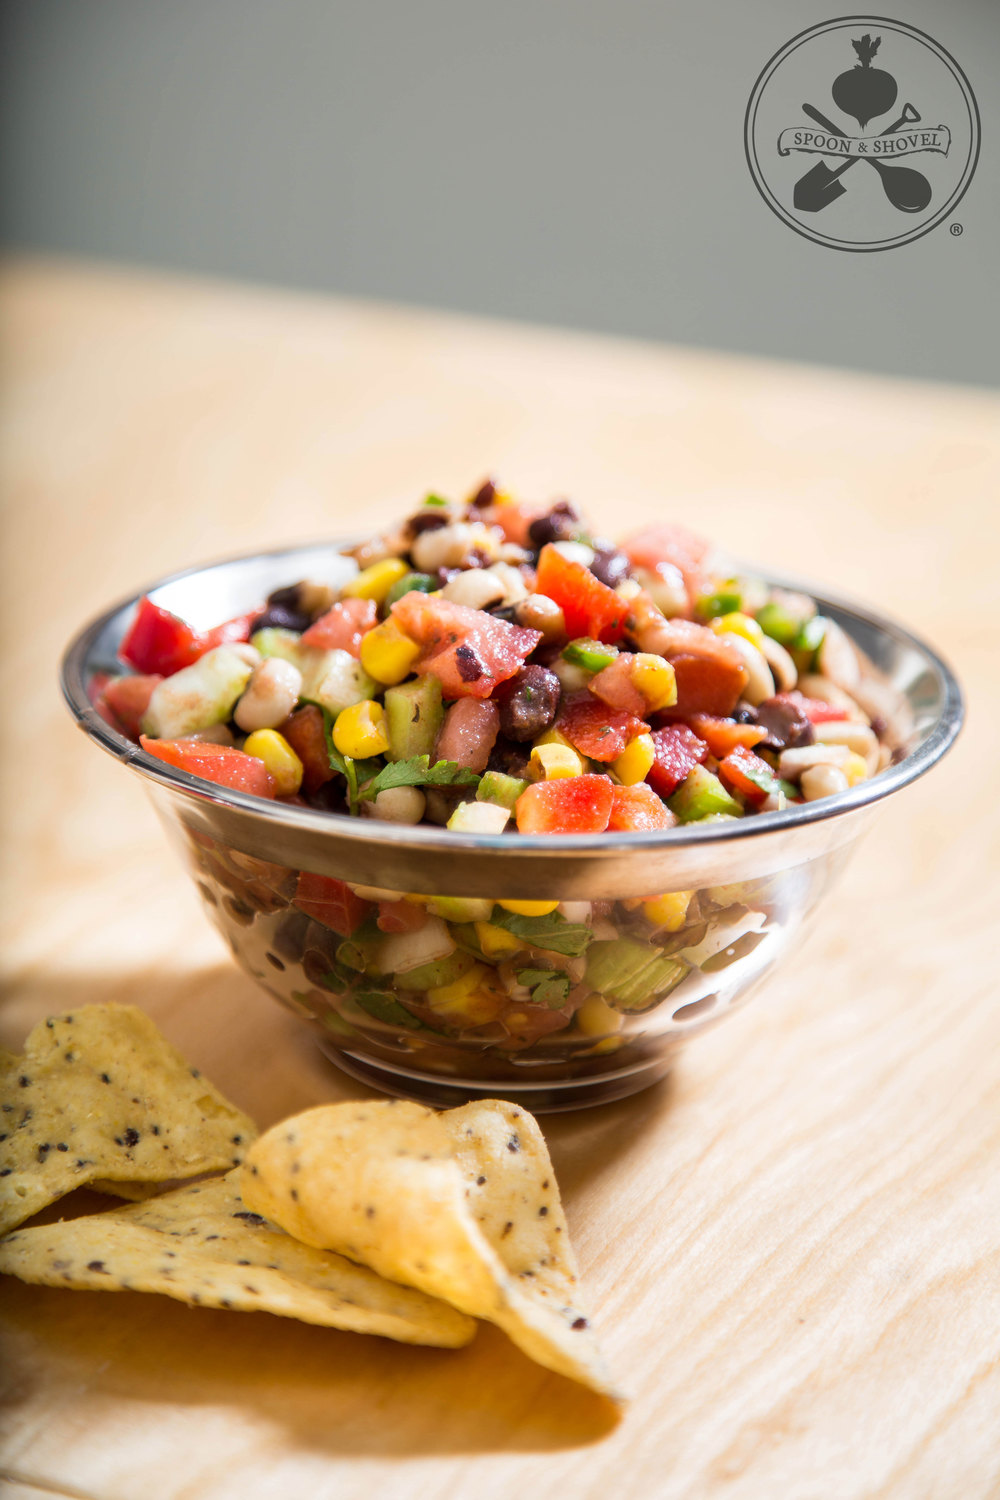 Savory cowboy caviar from The Spoon + Shovel